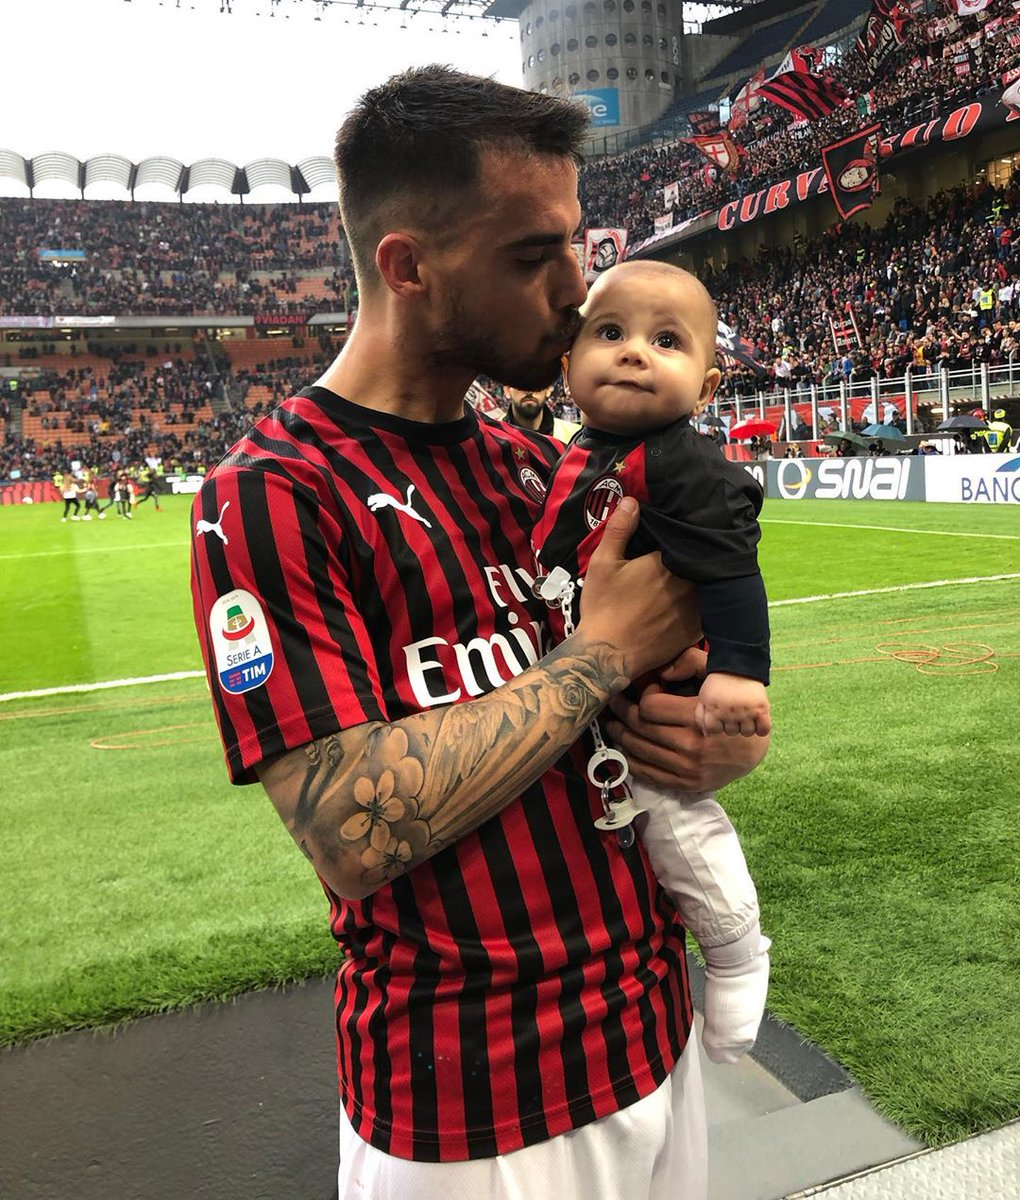 Footballers Wagskids On Twitter 19 05 2019 Suso Alicia And Baby Alessio During Ac Milan And Frosinone Football Match Pic Alicia Rodriguez Suso Susofernandez Aliciarodriguez Alisrodriguez Alessiofernandez Acmilan Acmilanwags Acmilankids